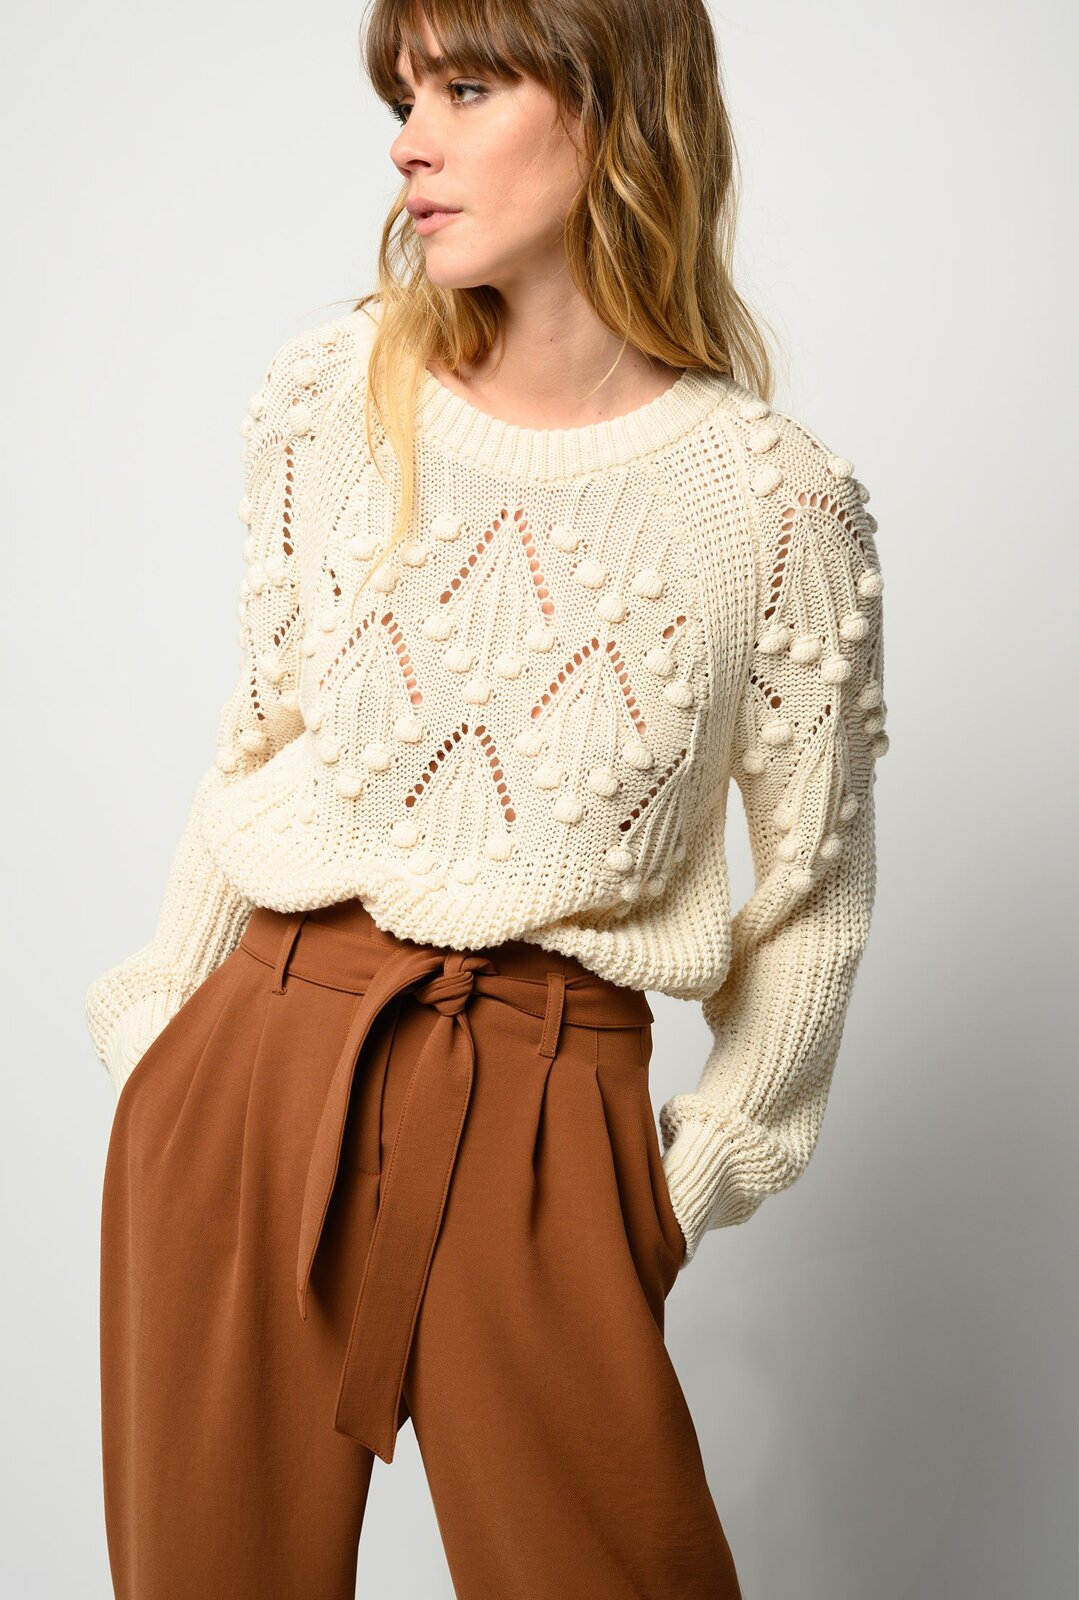 Pullover With Nuts - Pinko